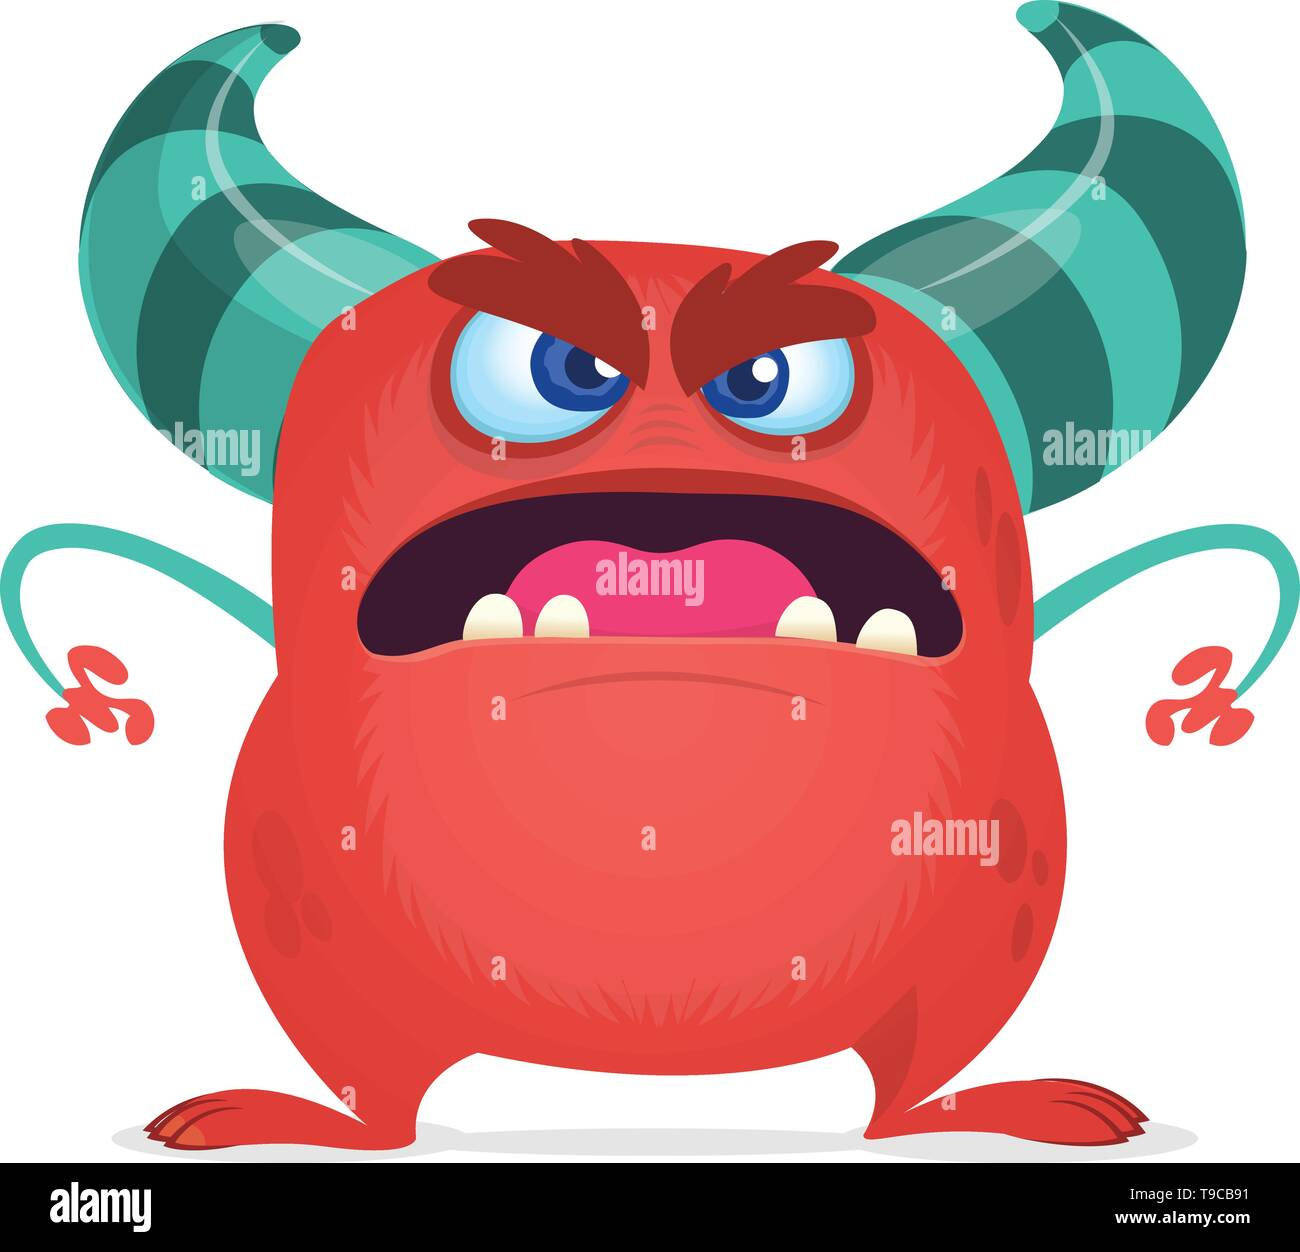 Angry cartoon red monster screaming. Yelling angry monster expression. Halloween character. Vector illustrations. - Stock Image